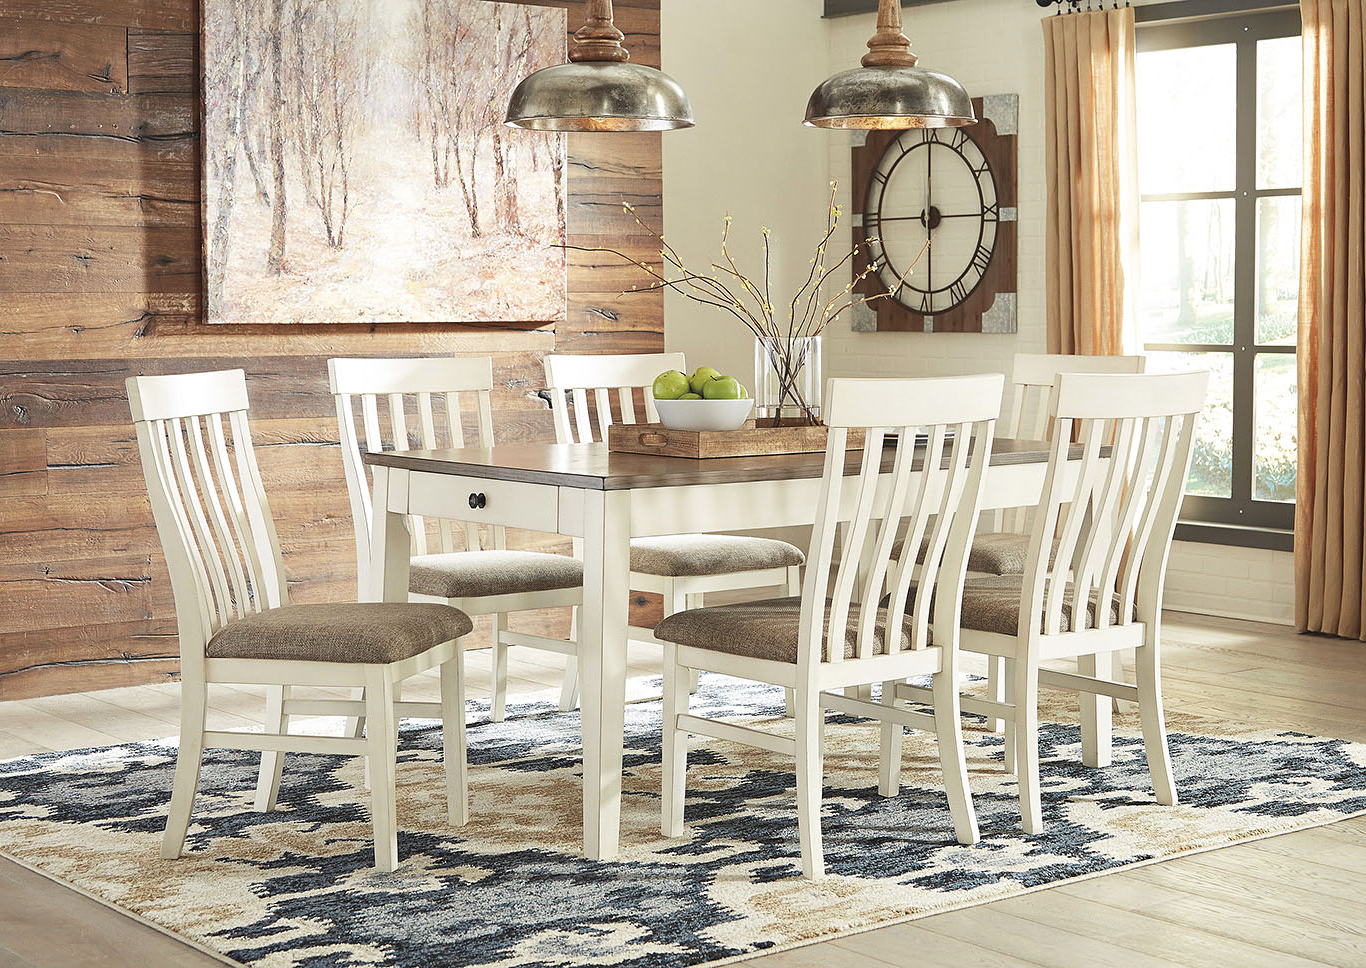 Best And Newest Wine Country Furniture Bardilyn Dining Table W/6 Side Chairs Pertaining To Coaster Contemporary 6 Seating Rectangular Casual Dining Tables (View 3 of 30)